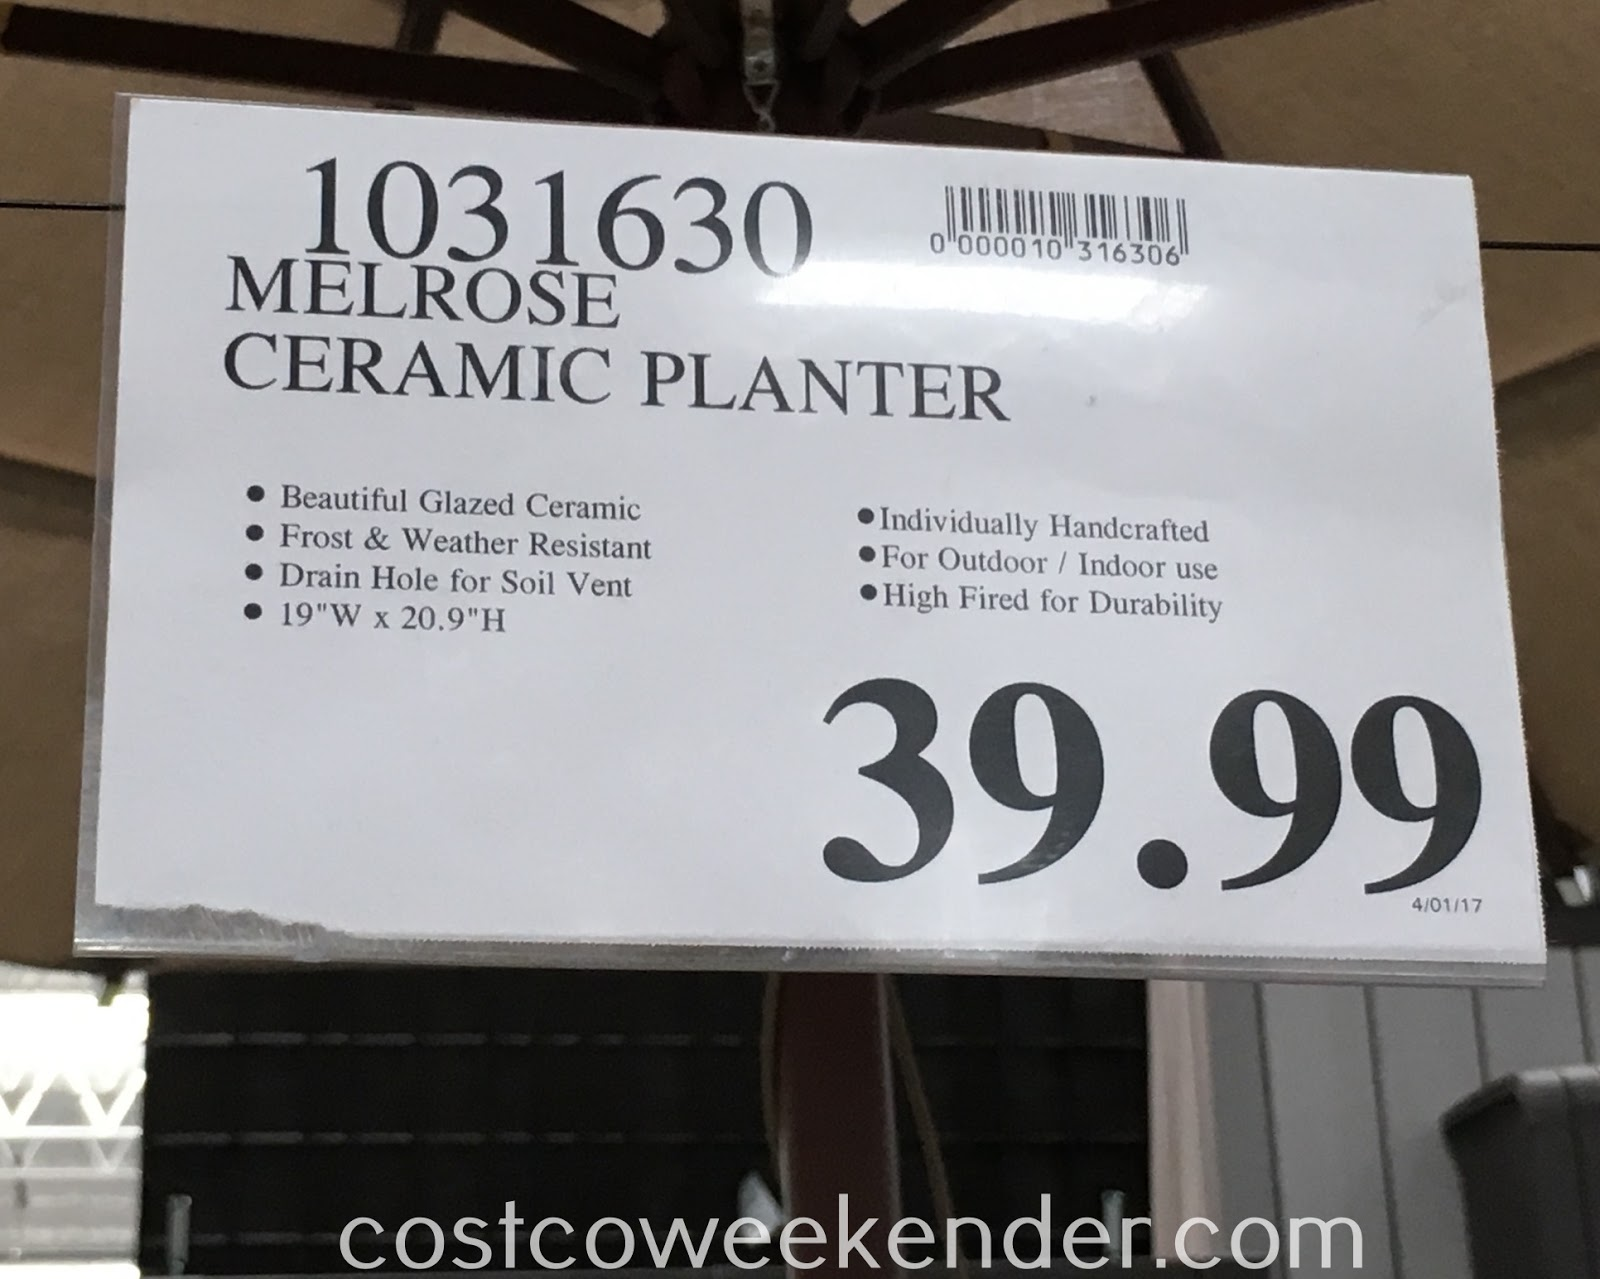 Costco 1031630 - Deal for the Melrose Ceramic Planter at Costco